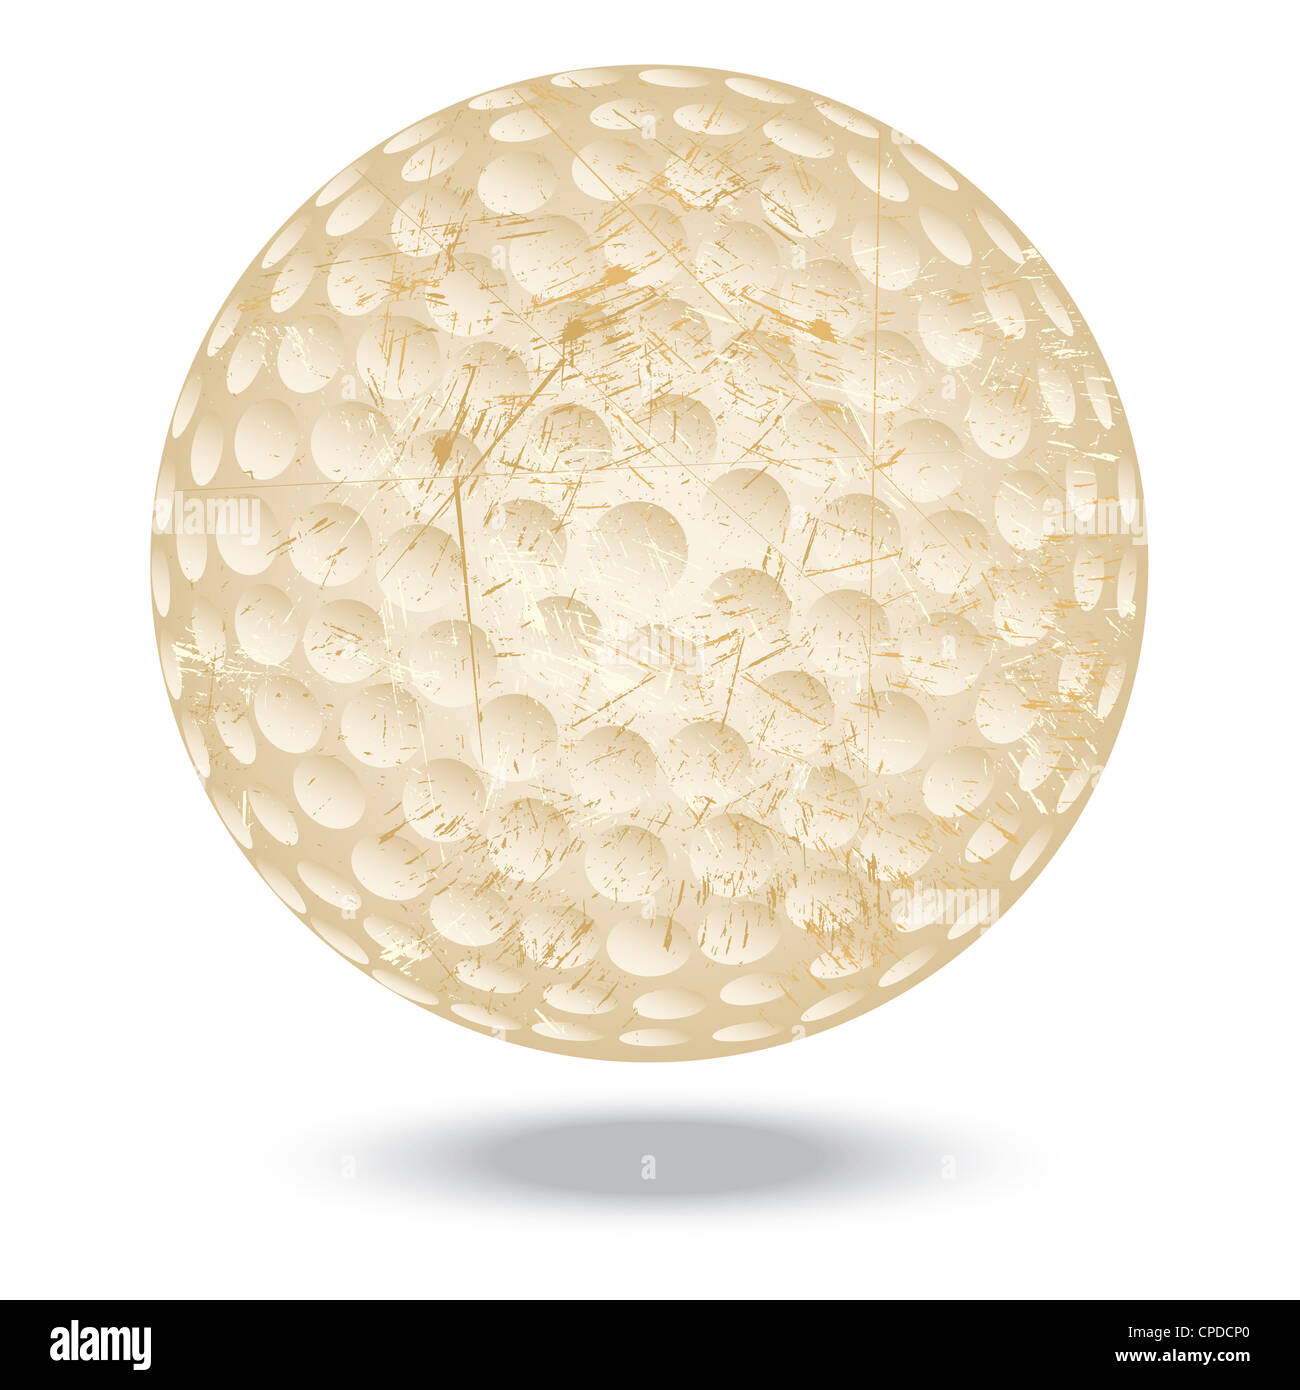 Illustration Of Highly Rendered Vintage Golf Ball Isolated In White Background